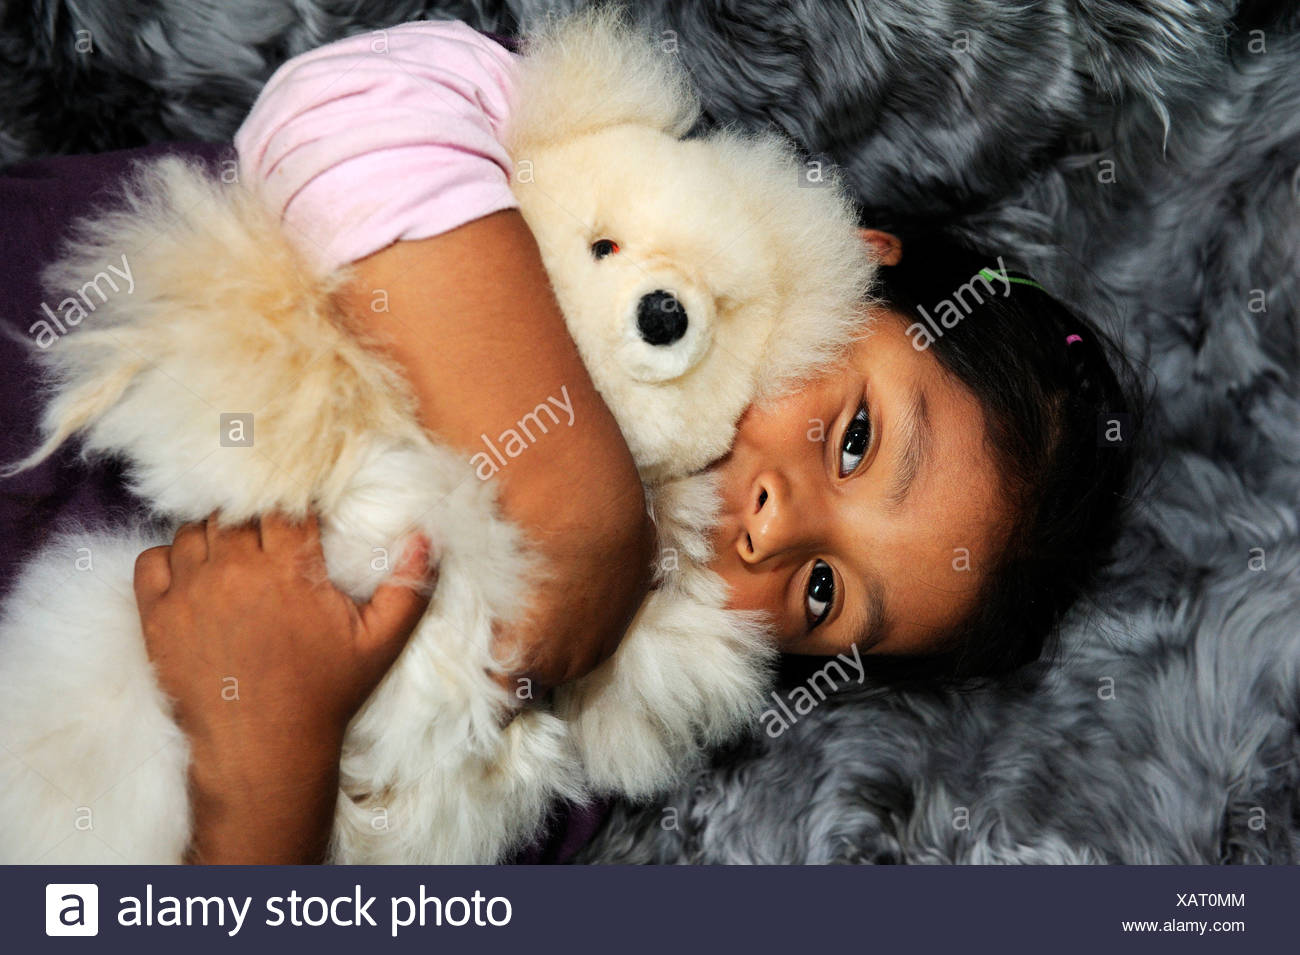 Girl with indigenous facial features hugging a teddy bear, production of soft toys and carpets from alpaca fur in a small family - Stock Image